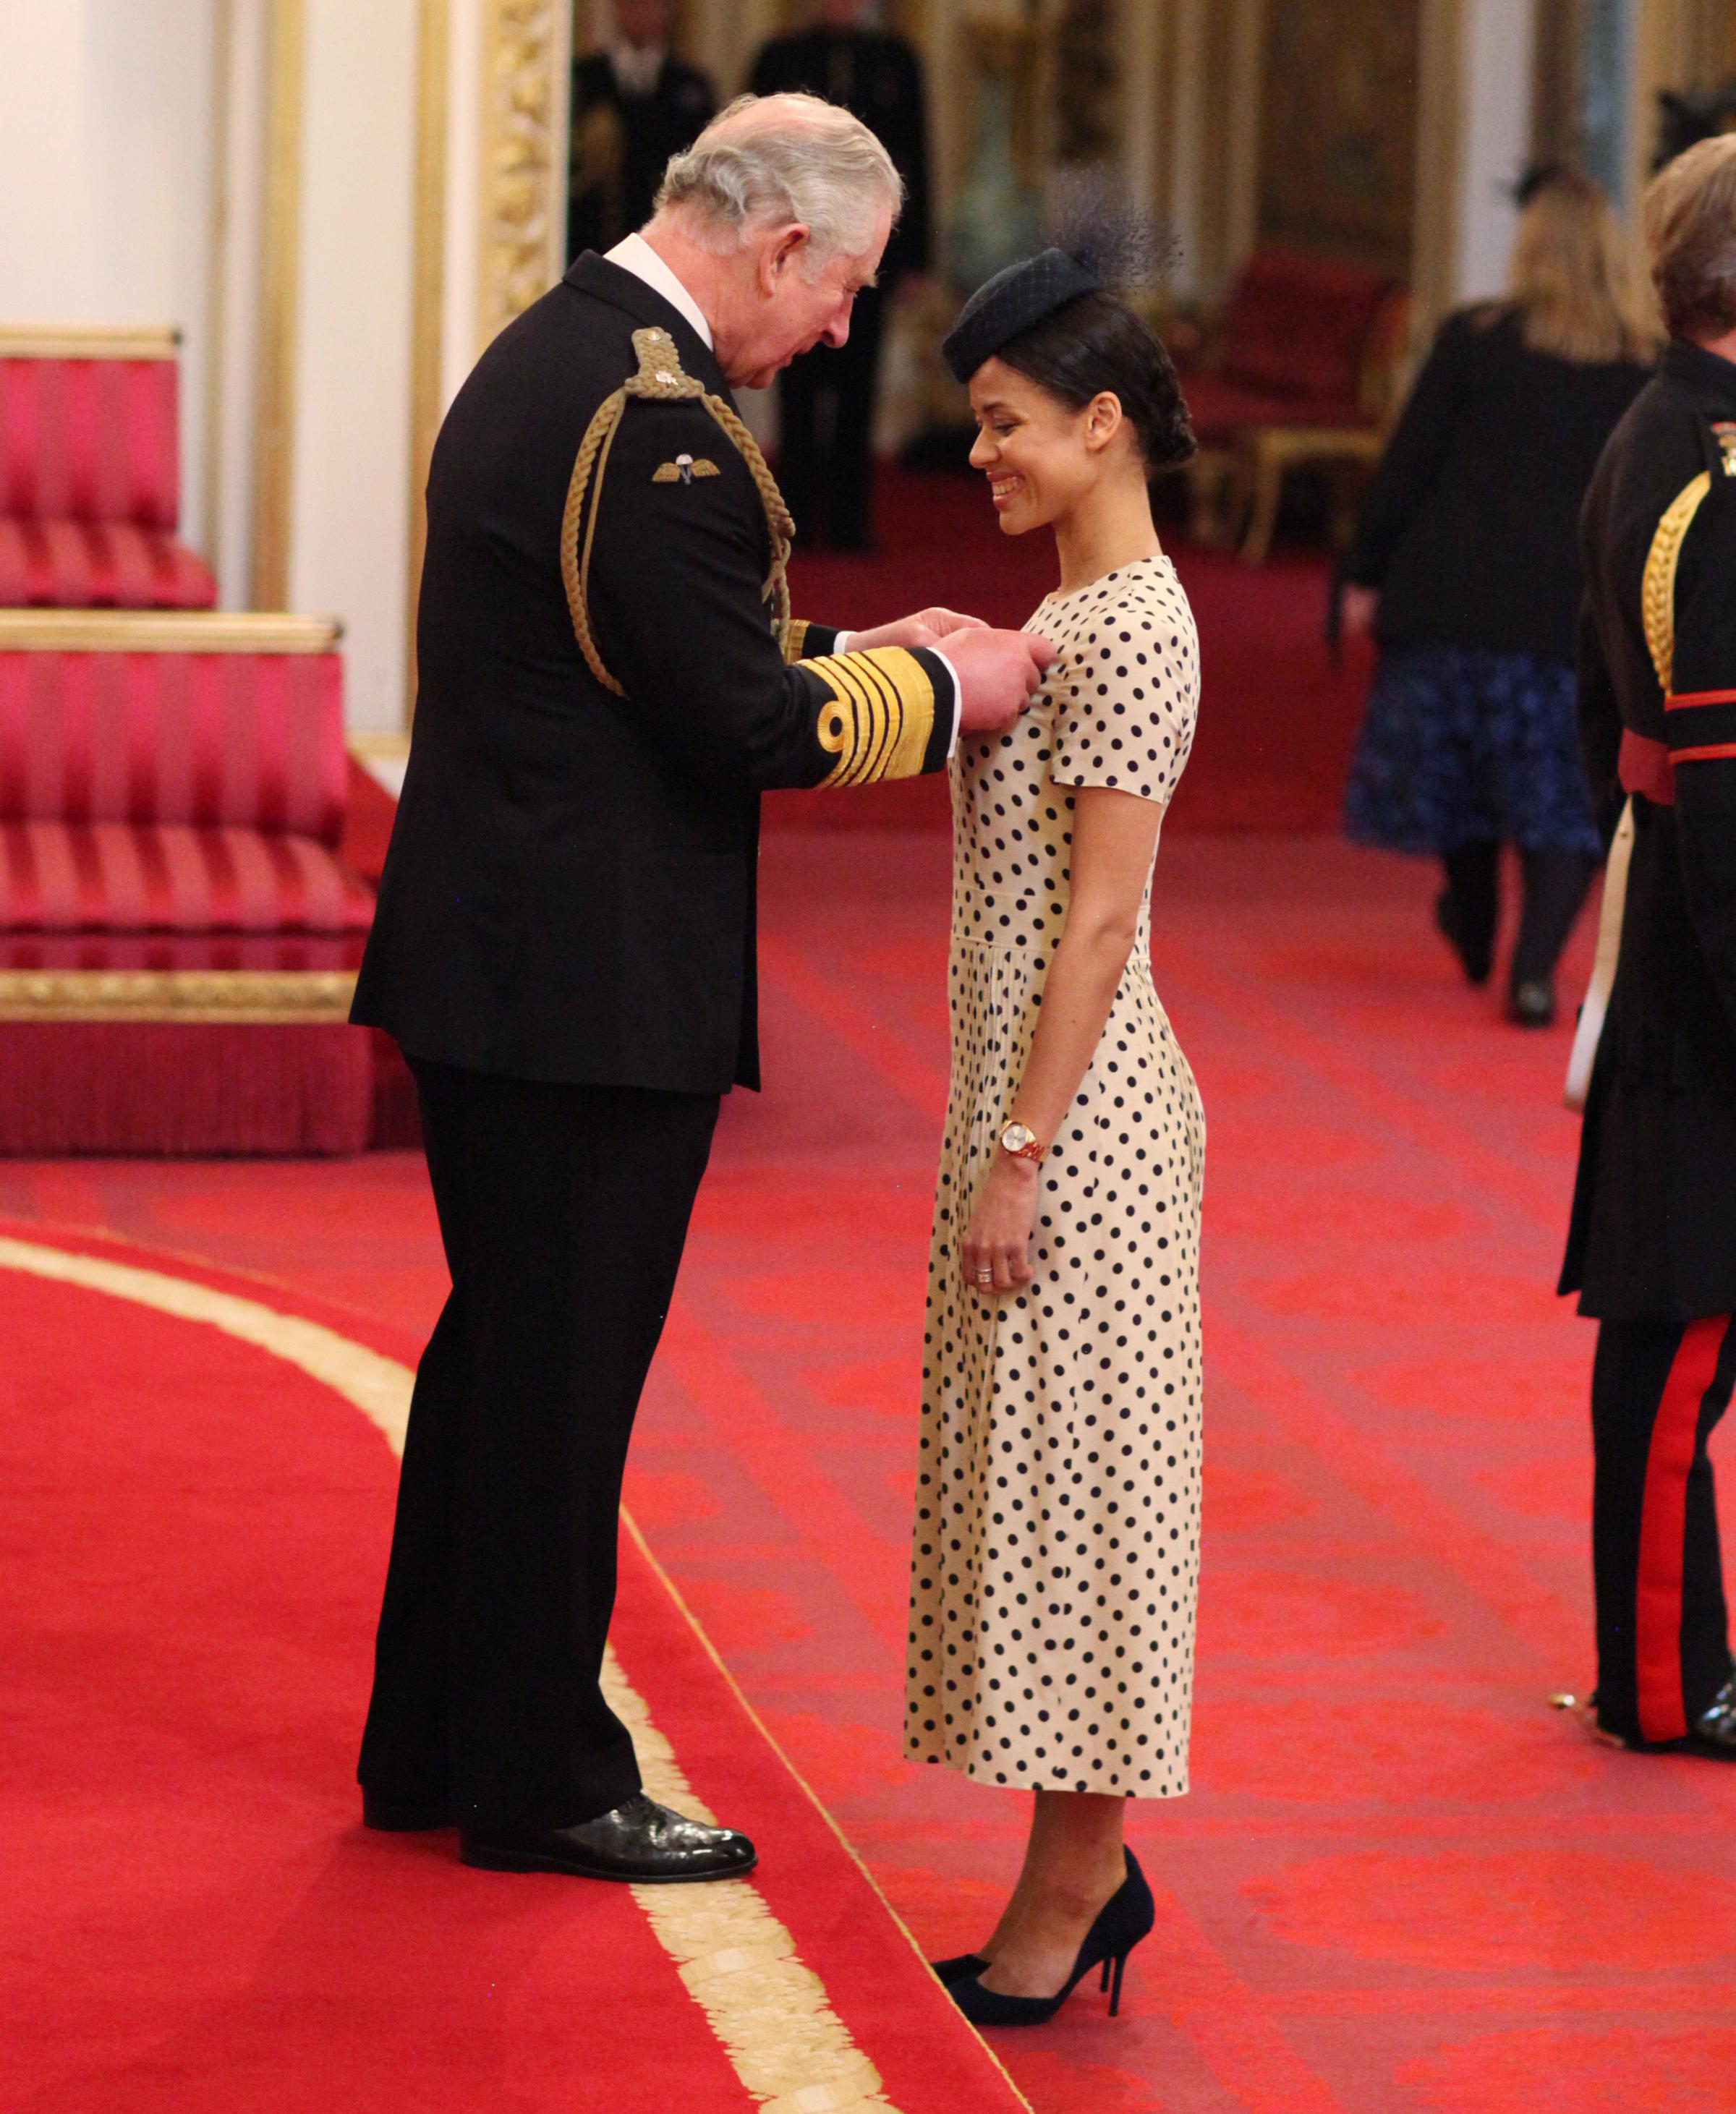 Gugulethu Mbatha-Raw from Witney is made an MBE (Member of the Order of the British Empire) by Prince of Wales, during an Investiture ceremony at Buckingham Palace. Picture: PA